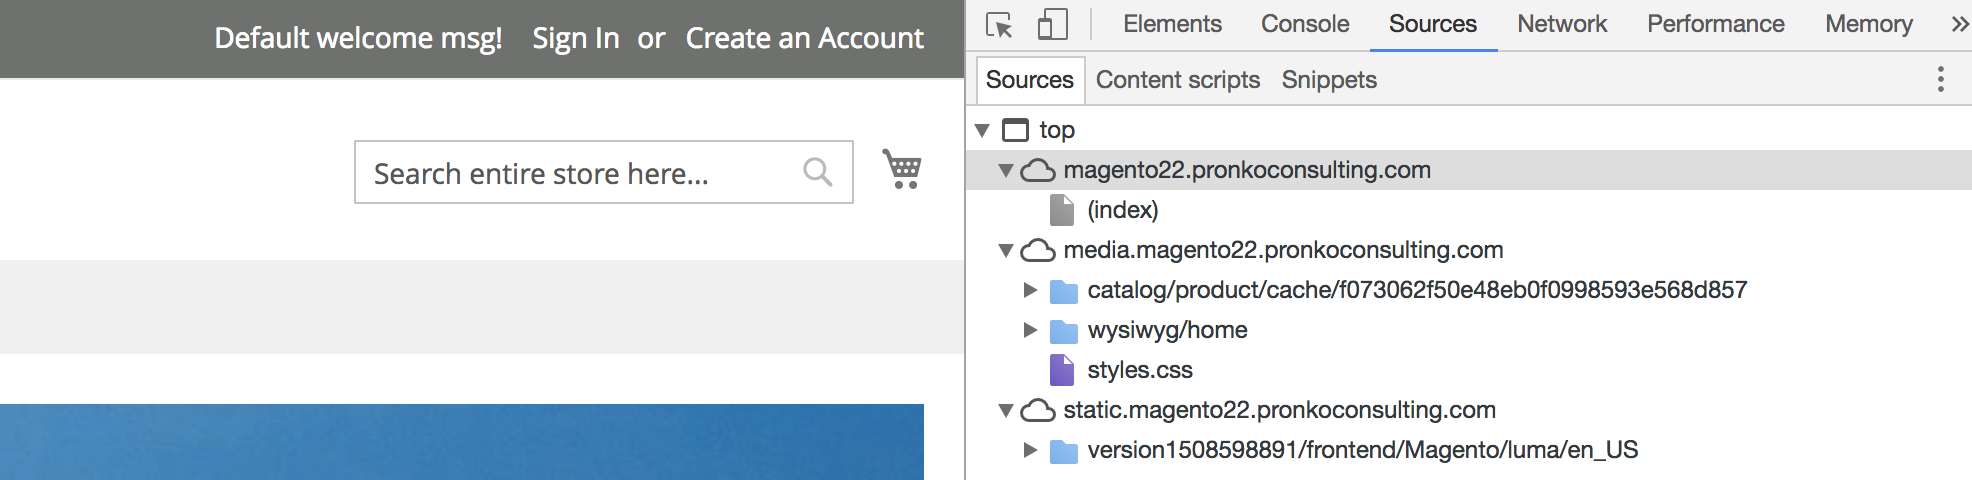 Applied changed on Magento 2 frontend